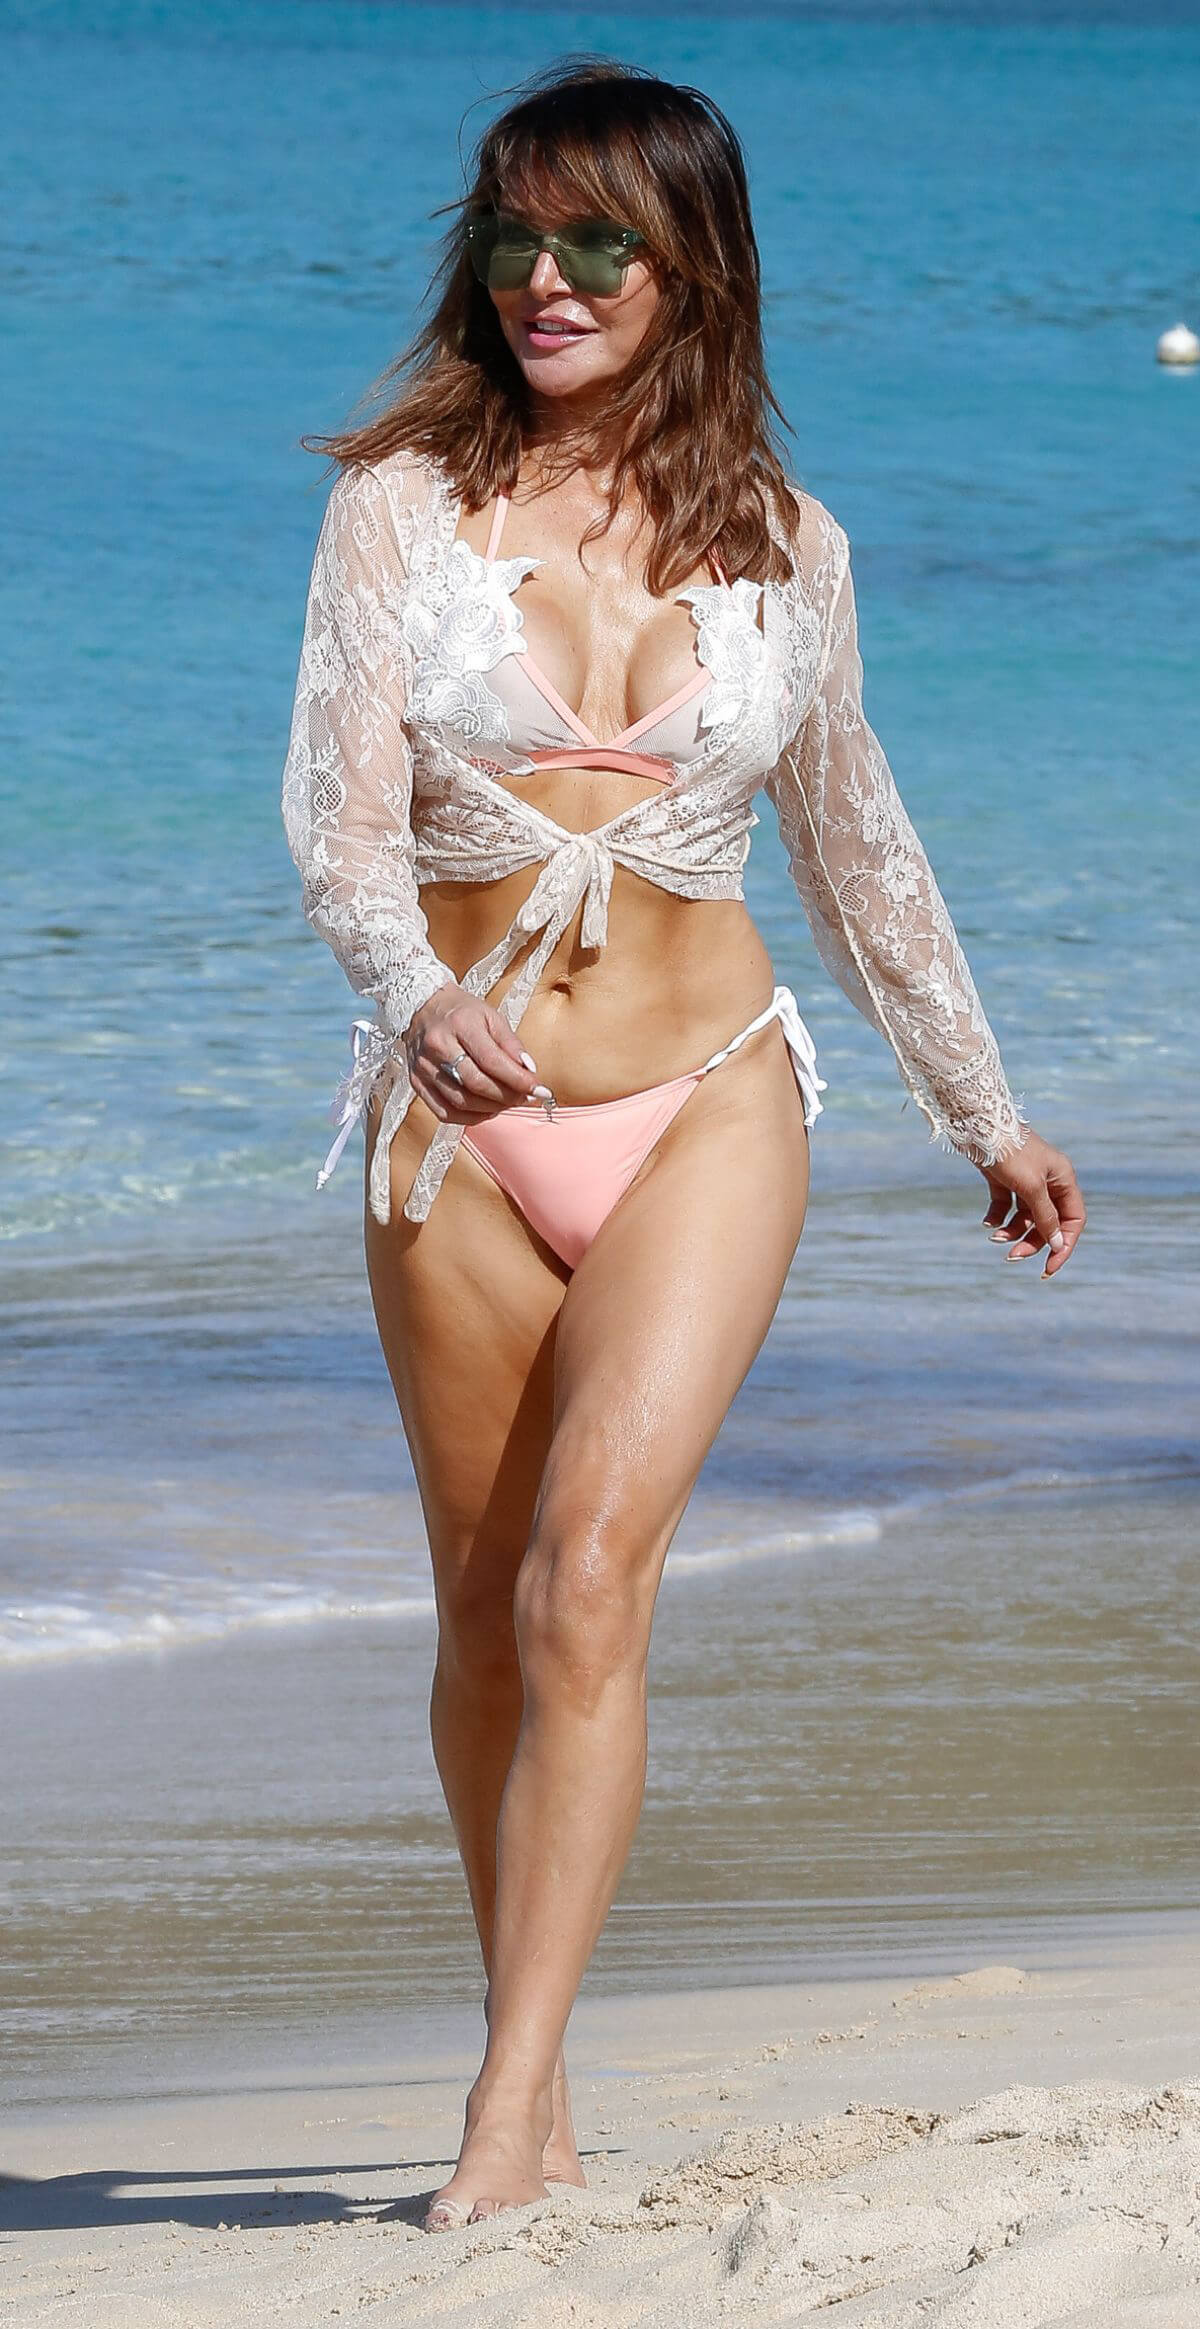 2019 Lizzie Cundy nude photos 2019